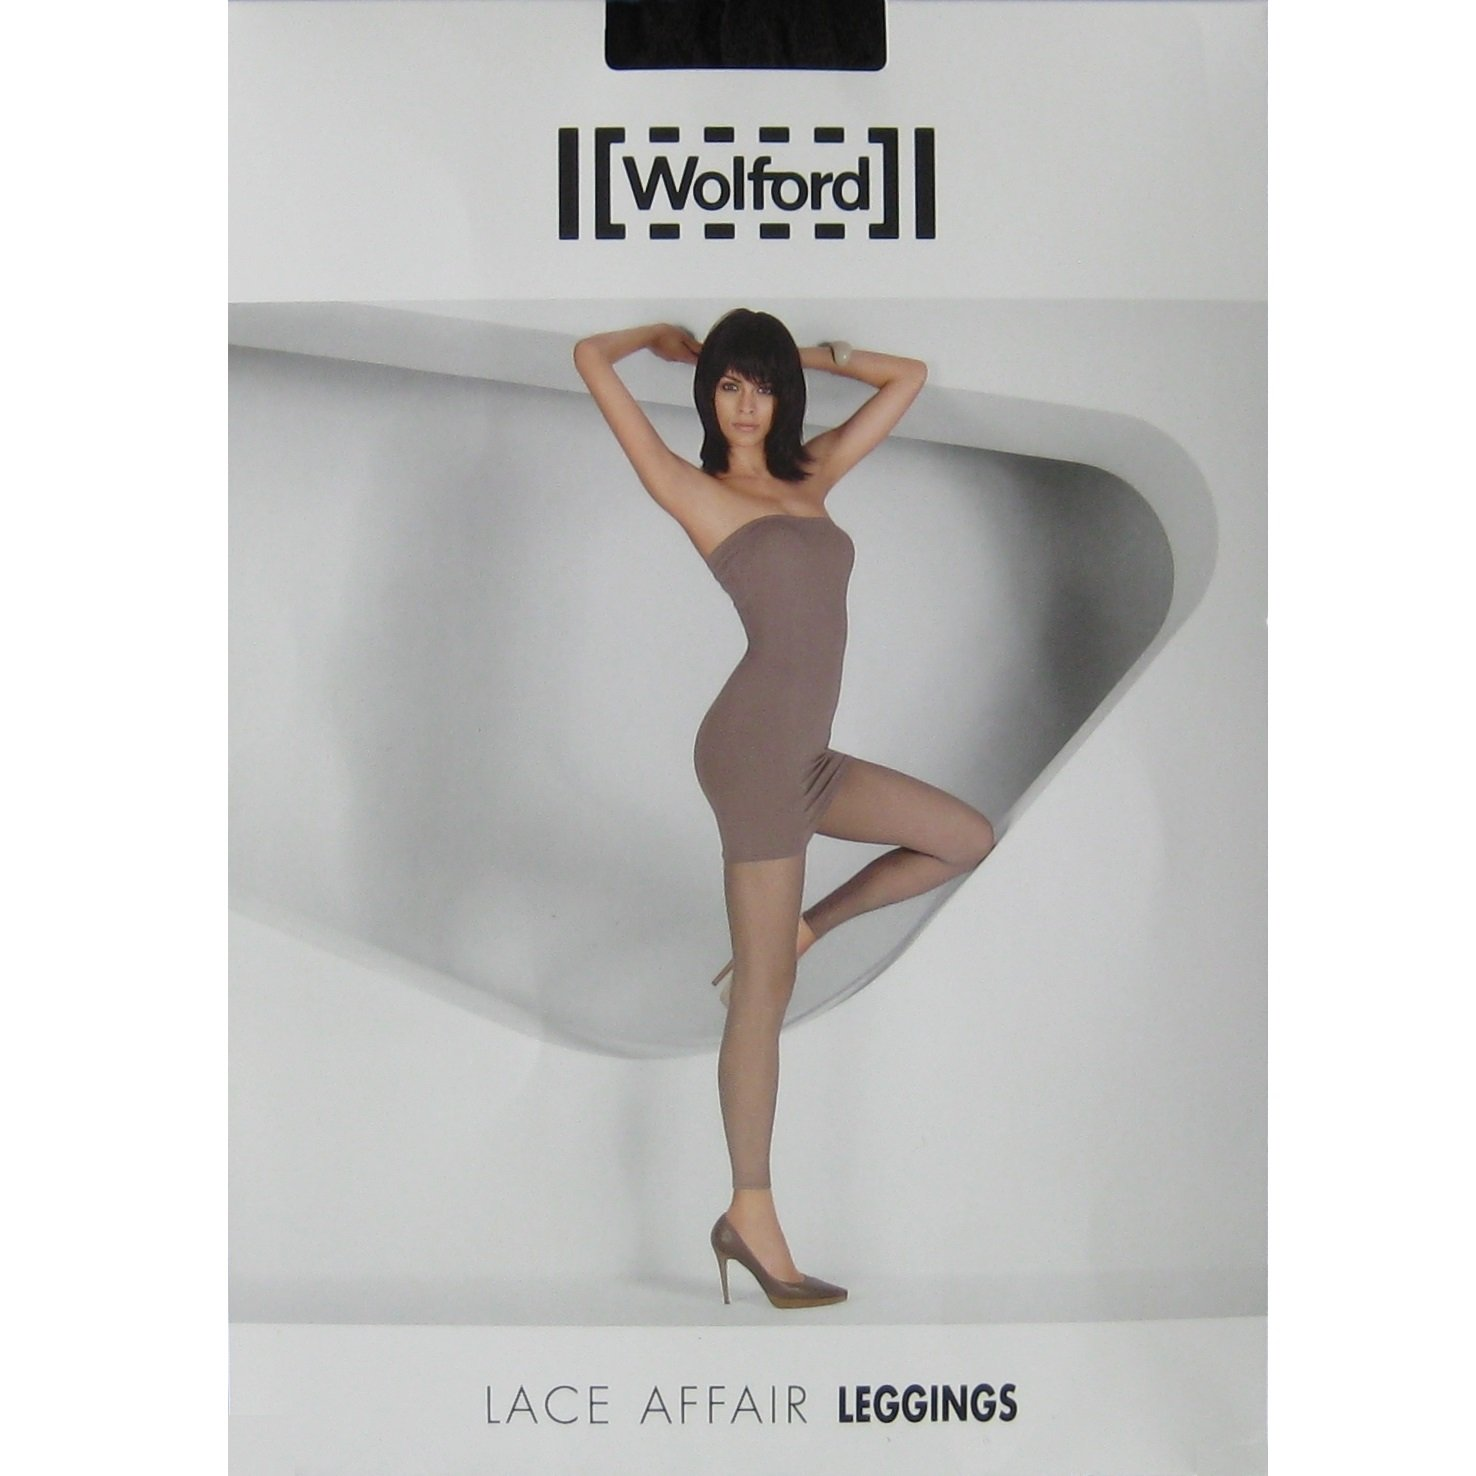 NIP Wolford Lace Affair Leggings #19054 - Sable (Taupe) - XS